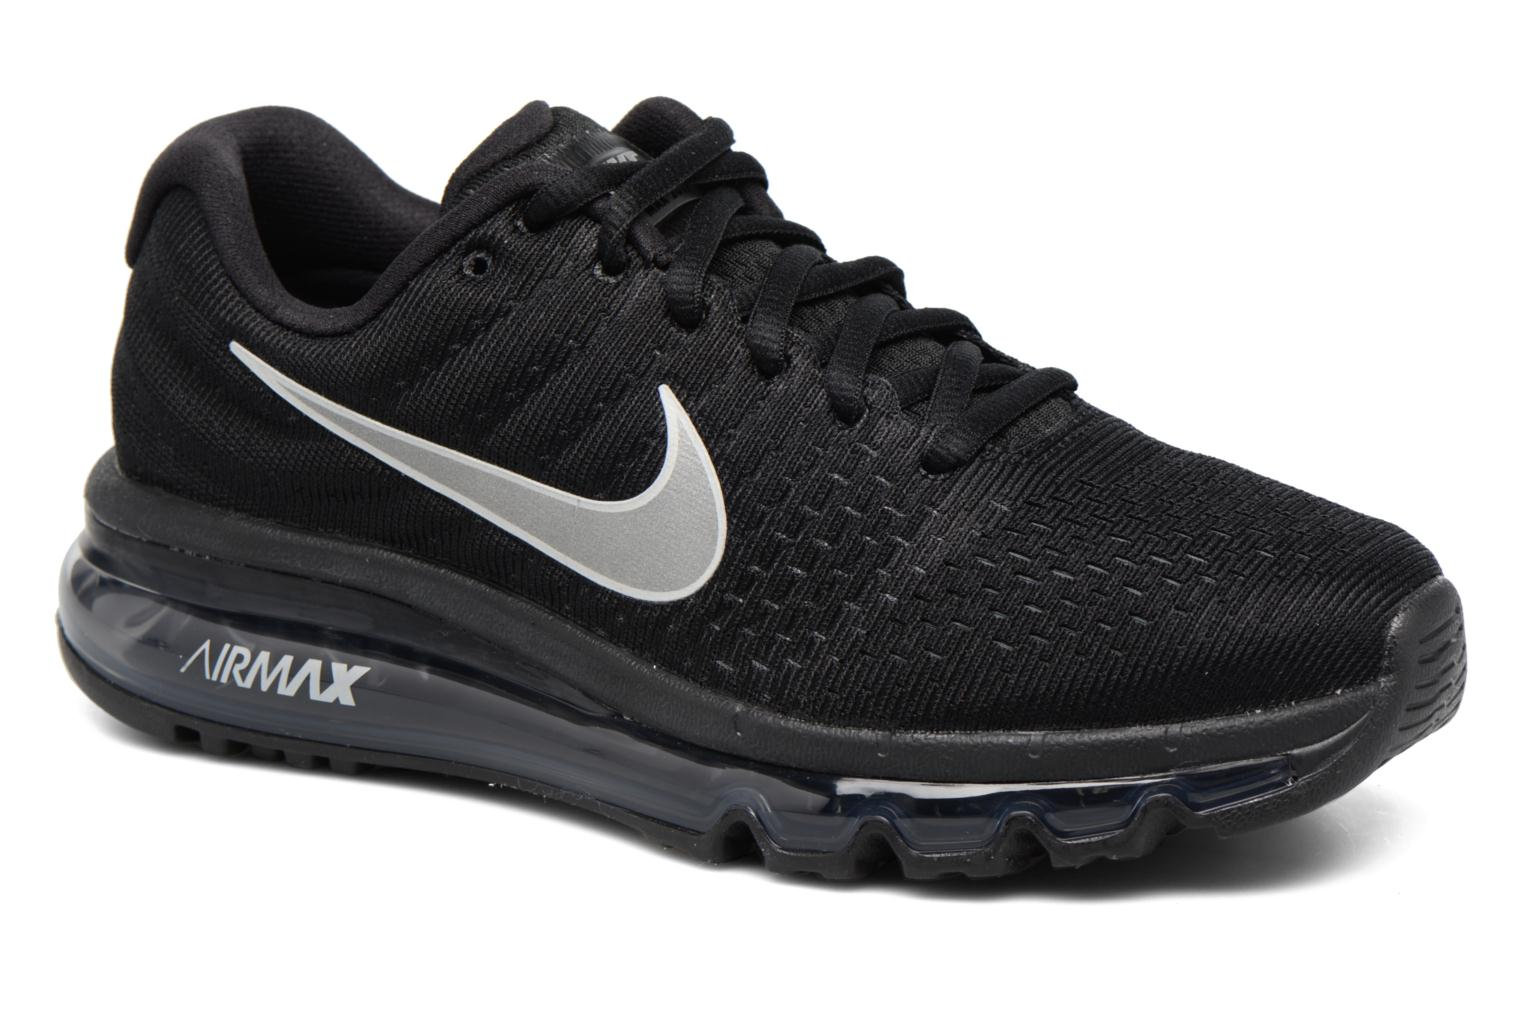 Wmns Nike Air Max 2017 Black/white-anthracite